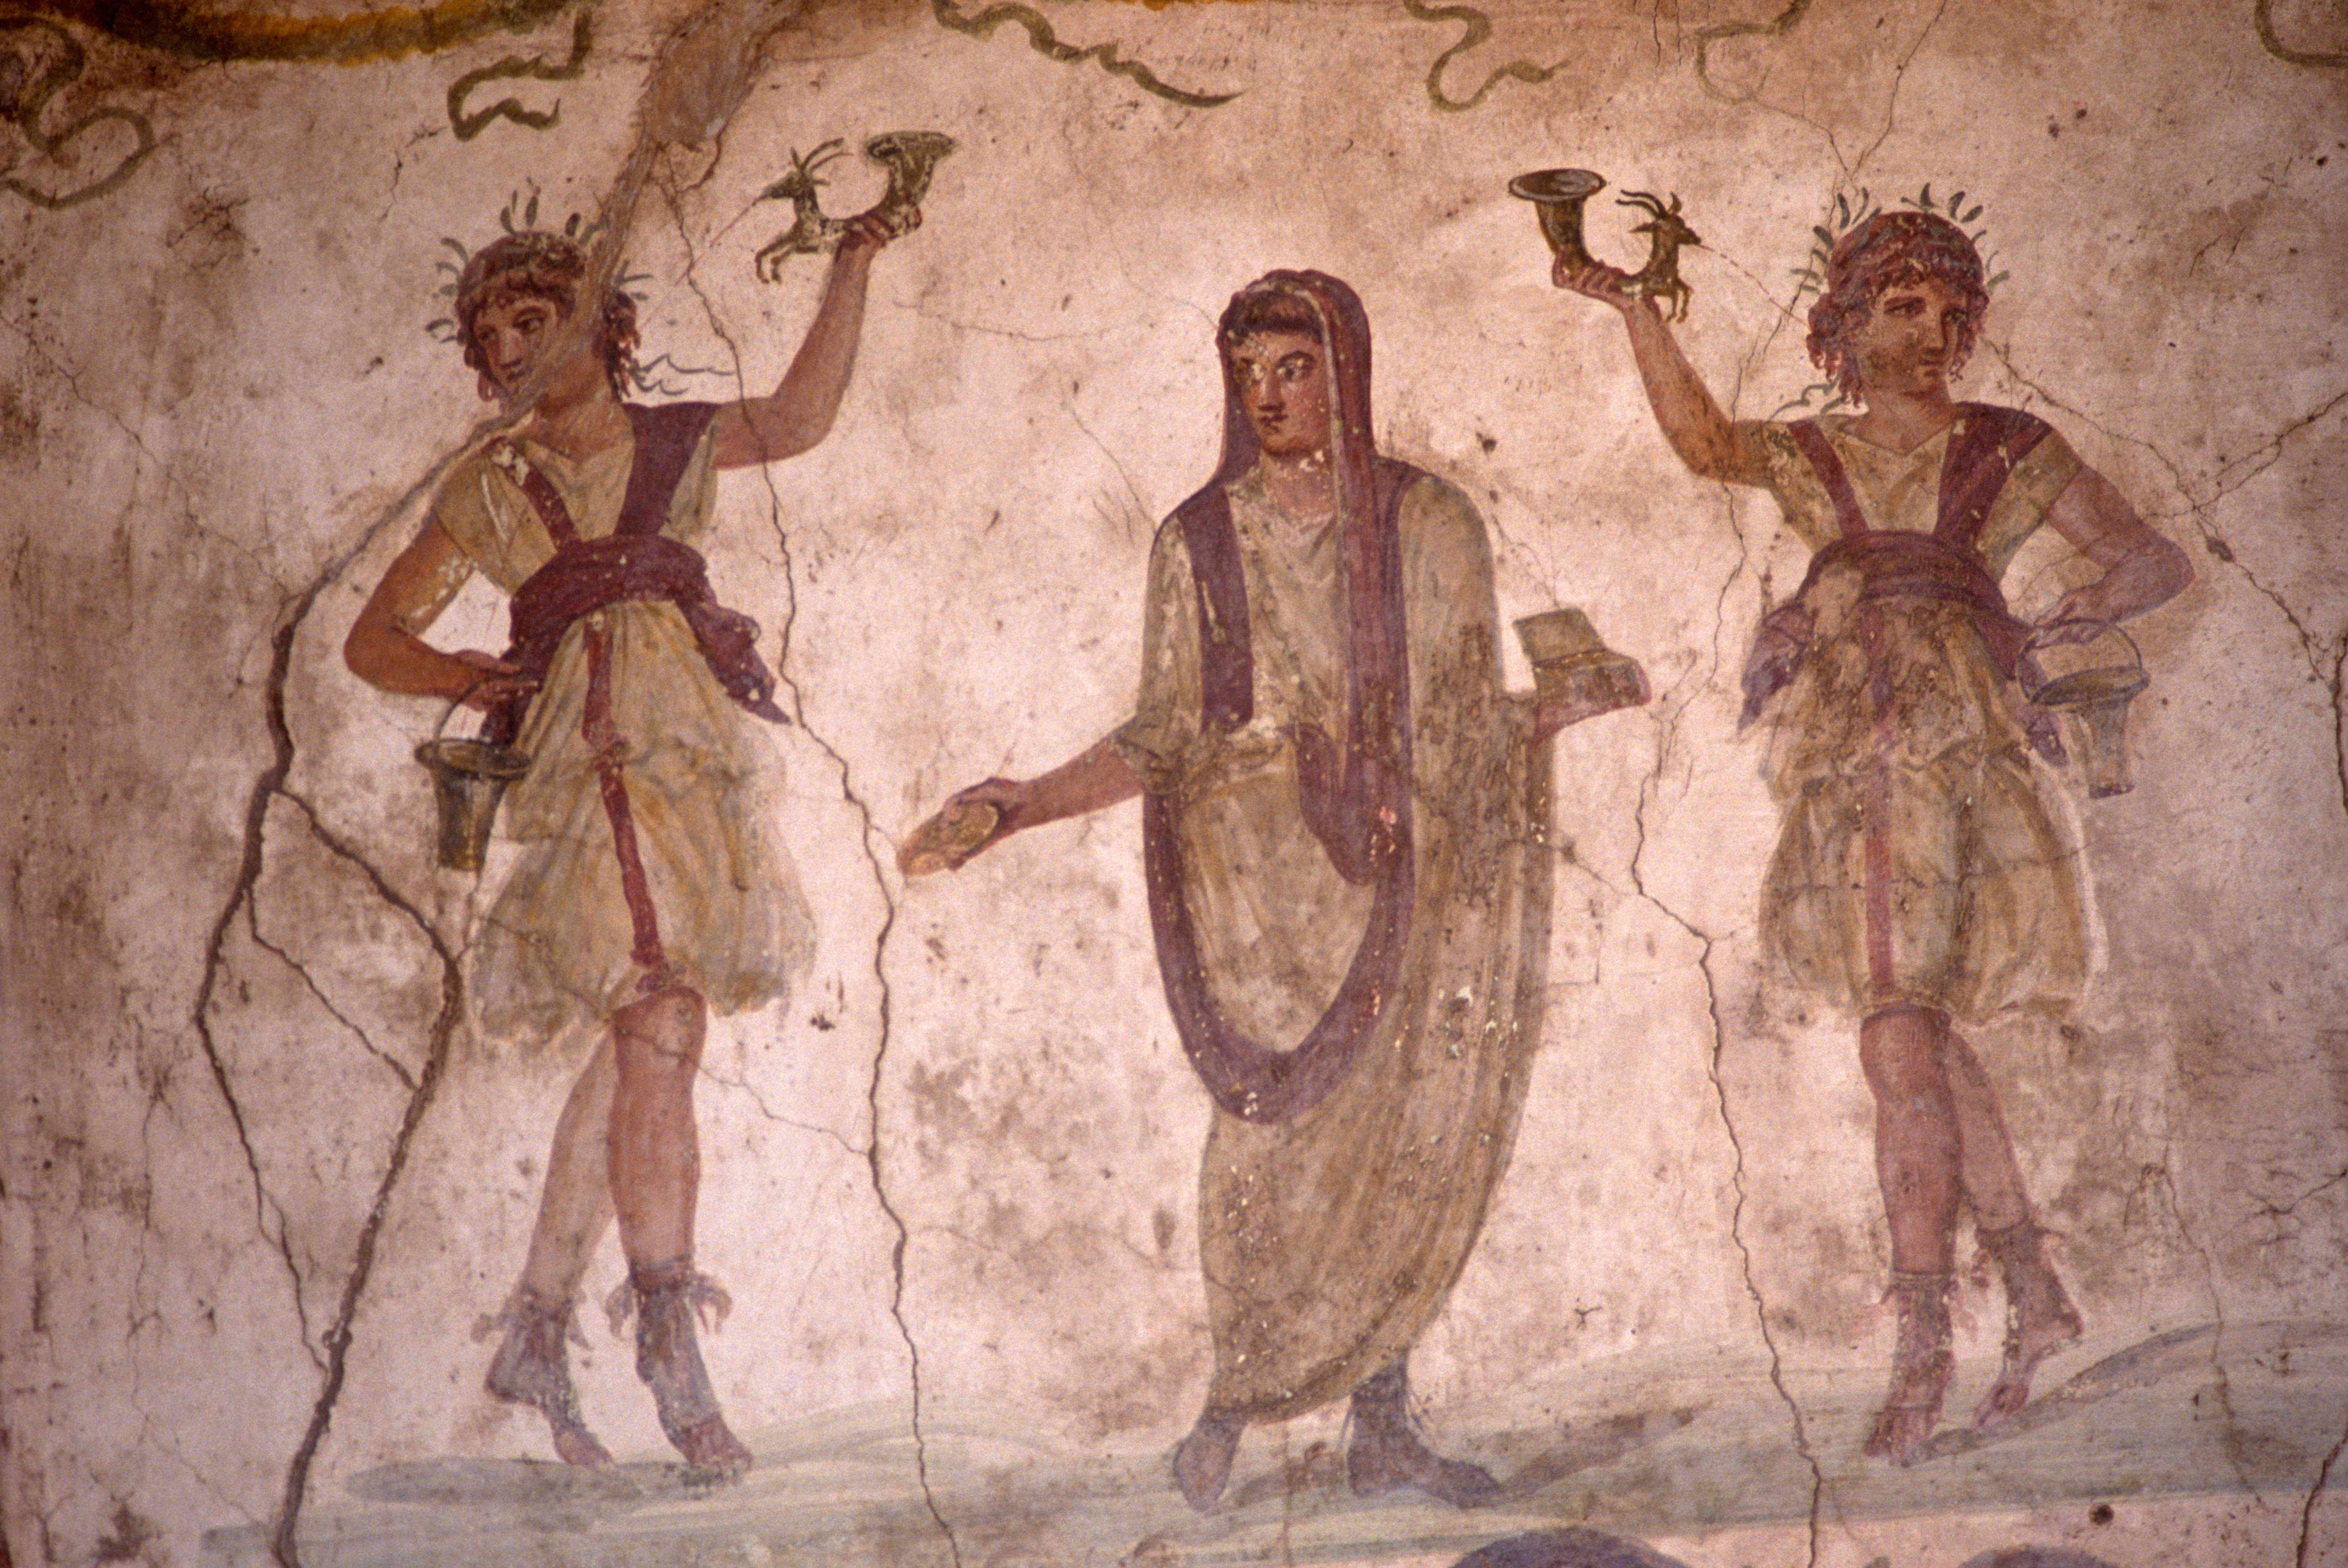 A fresco from the Villa of the Vettii in Pompeii. Painted before the catastrophic eruption of Versuvius, these frescoes were uncovered from beneath layers of volcanic ash and pumice. (Photo by In Pictures Ltd./Corbis via Getty Images)